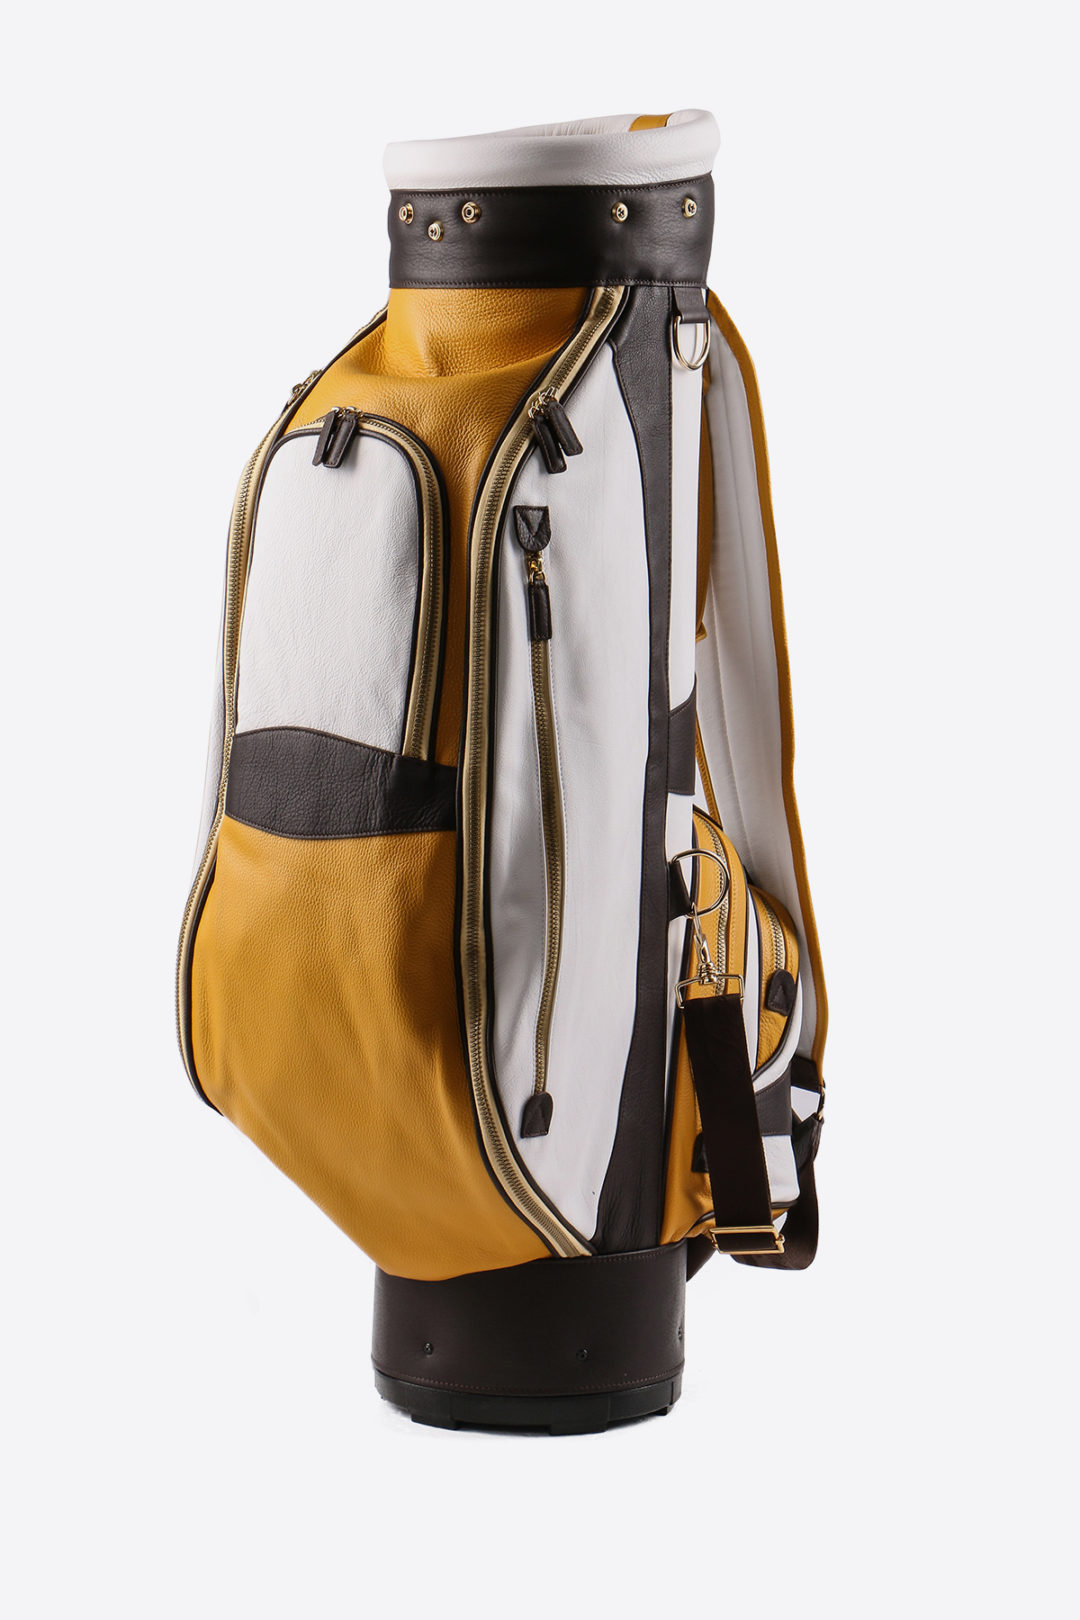 Imperial golf bag handmade in Italy with resistant and waterproof leather: main image, white yellow dark brown